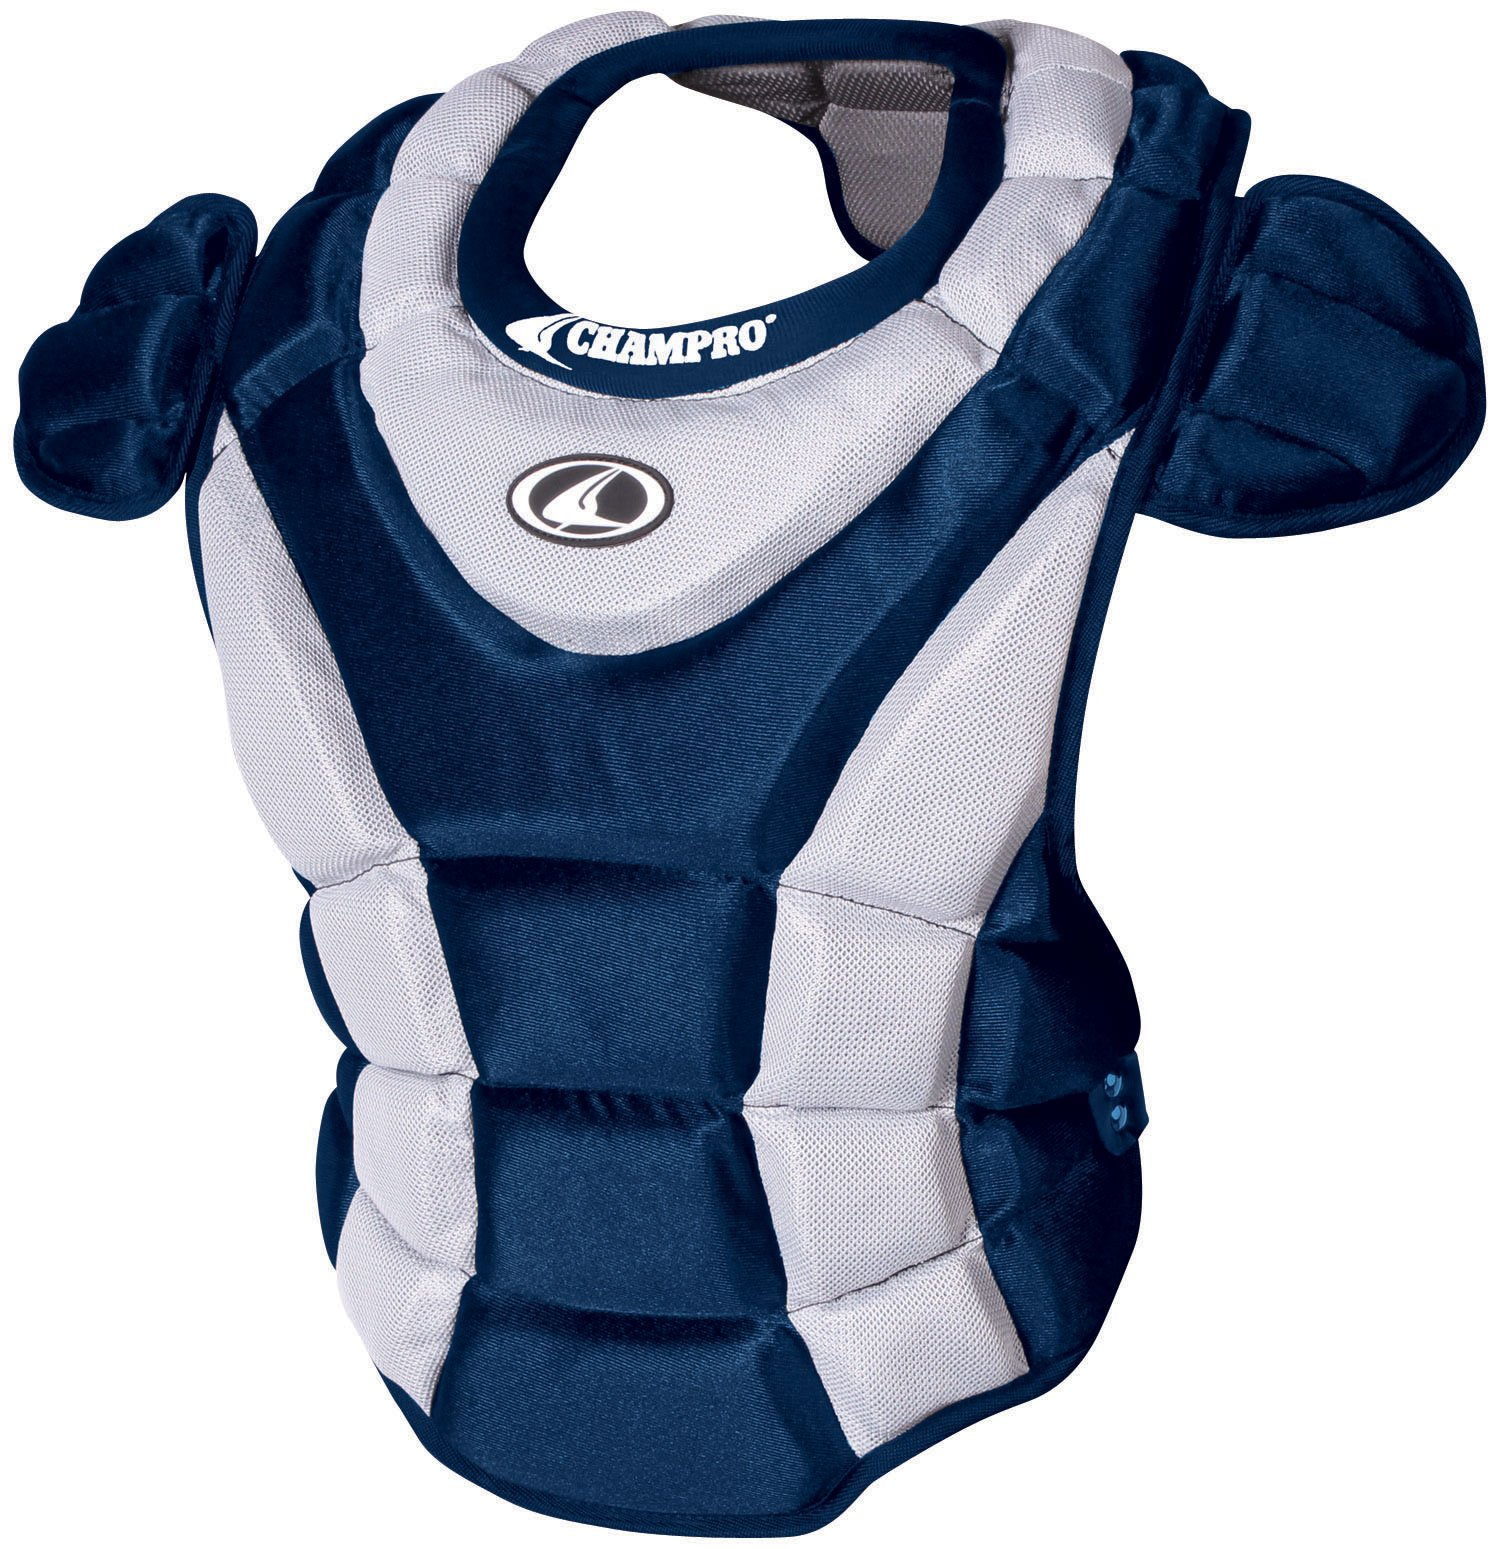 Champro Women's Chest Protector (Navy, 16-Inch length)